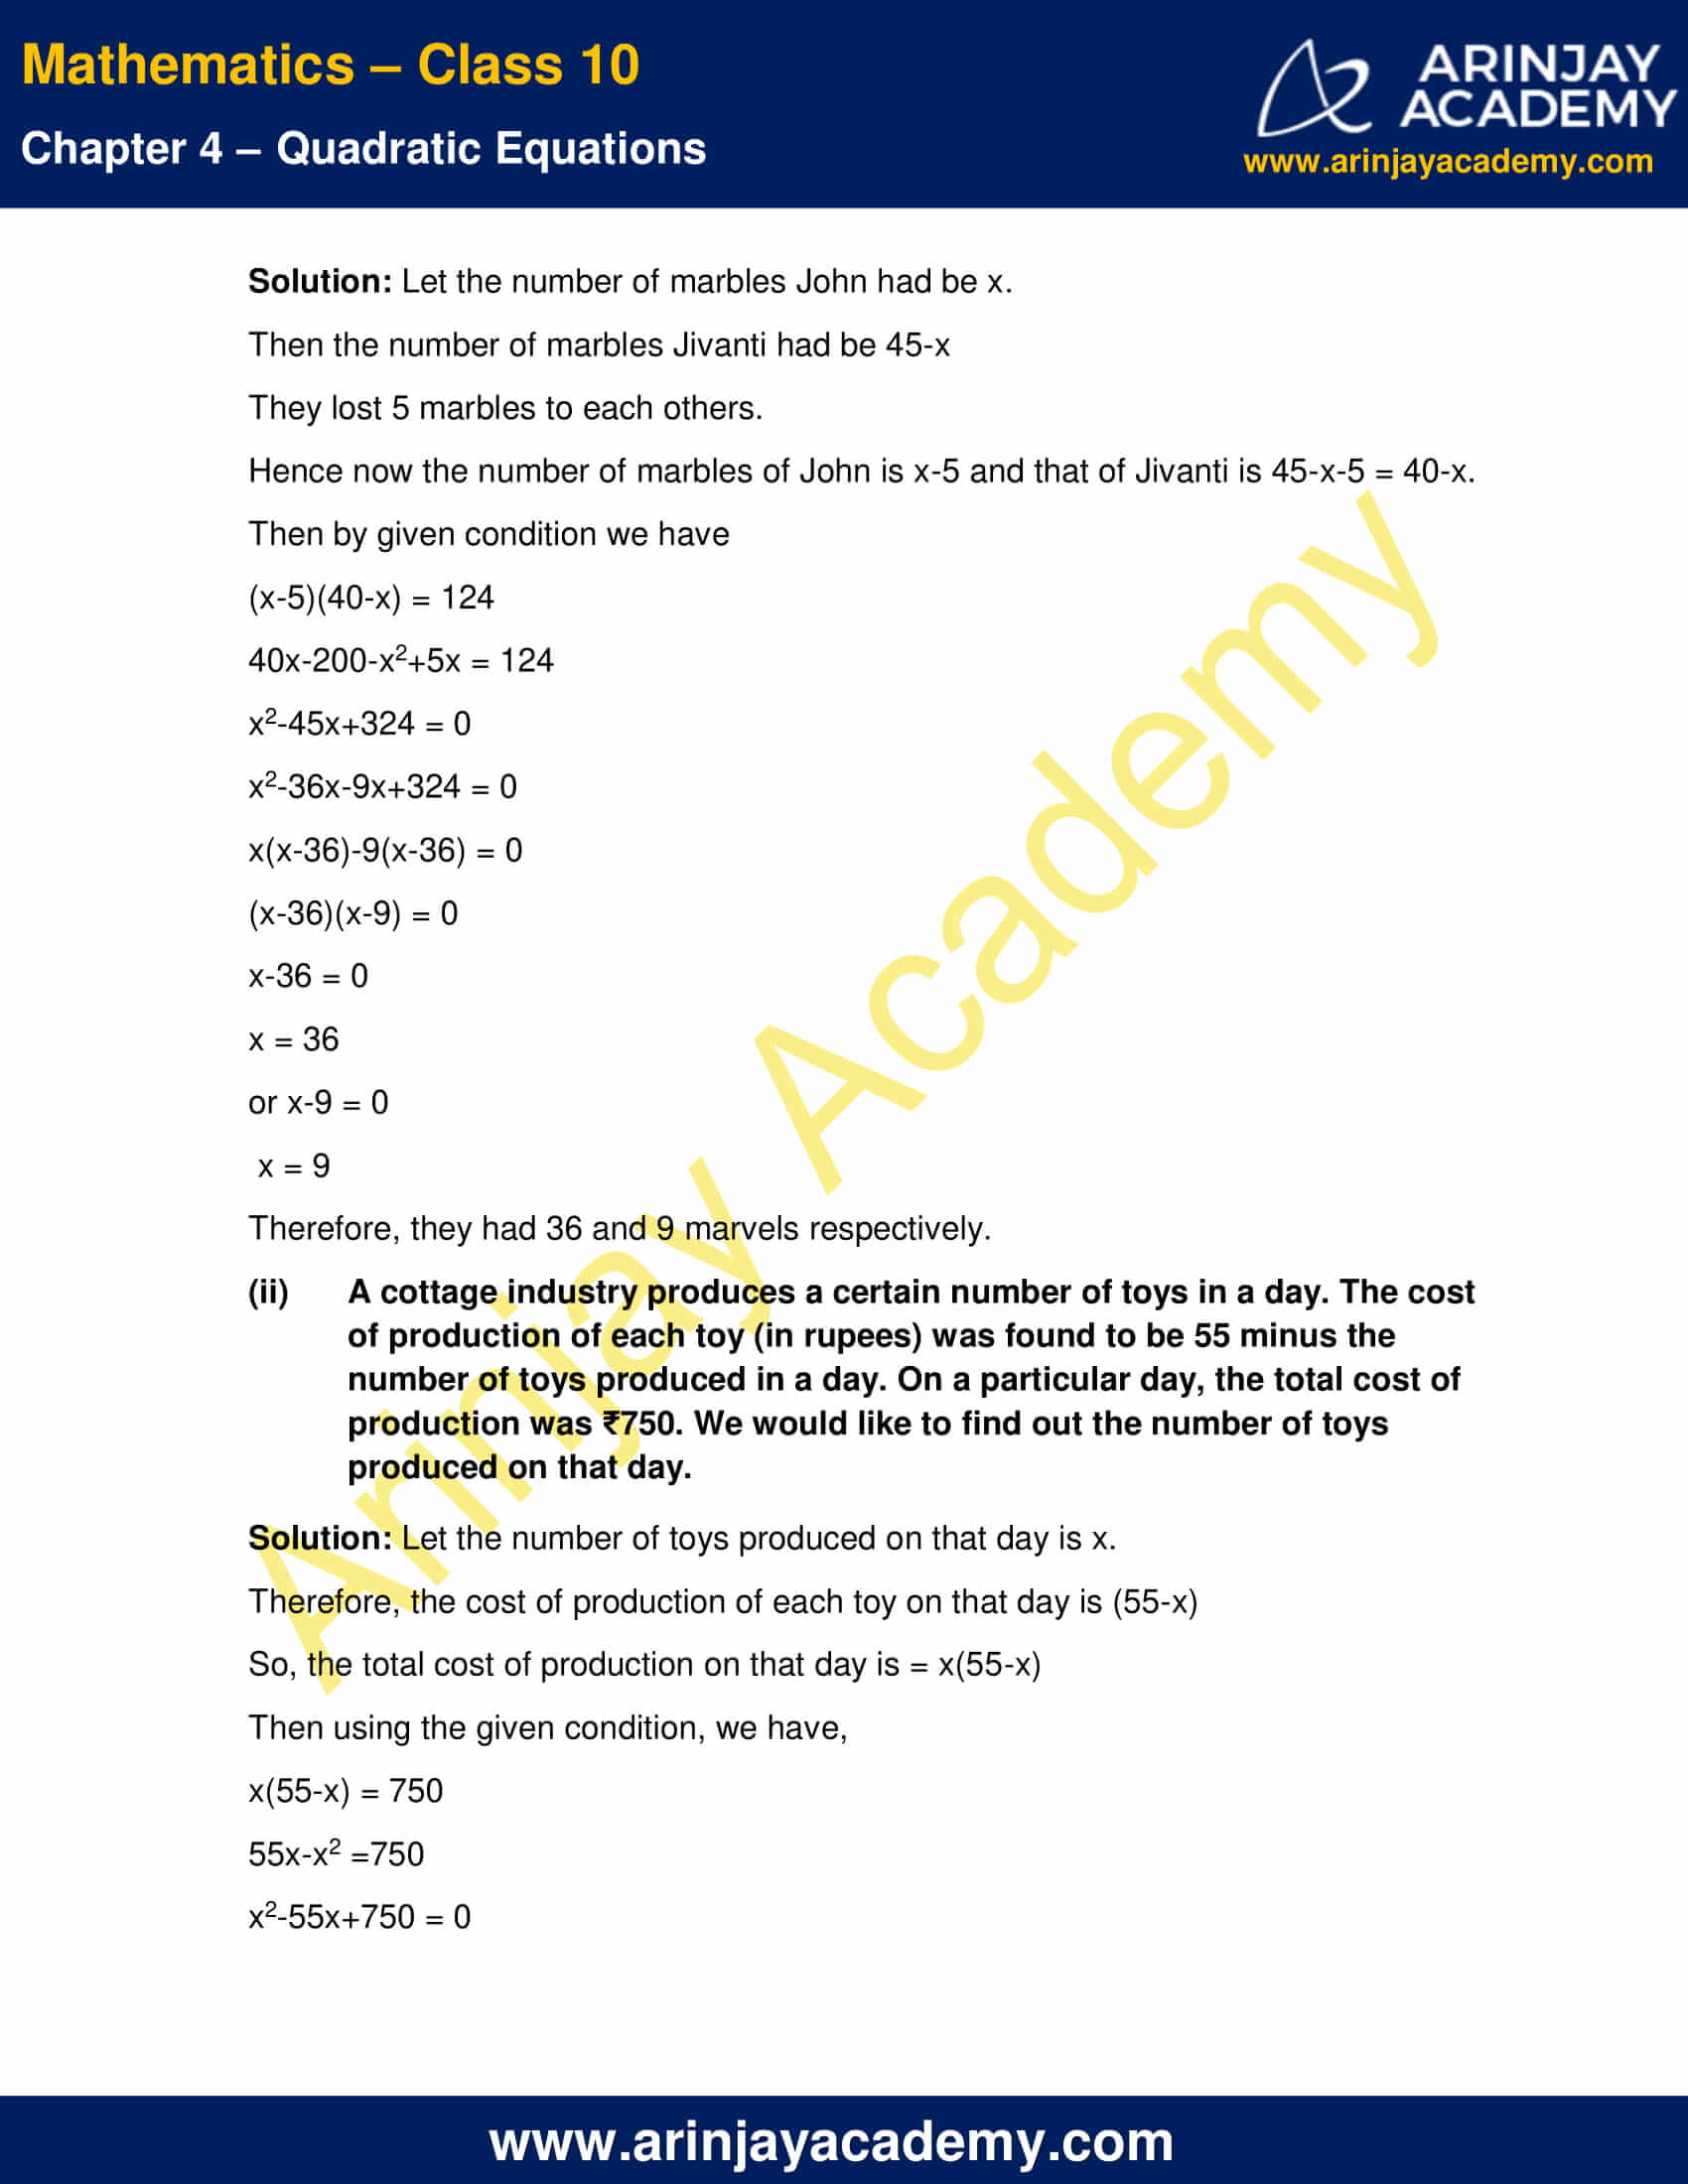 NCERT Solutions For Class 10 Maths Chapter 4 Exercise 4.2 image 3